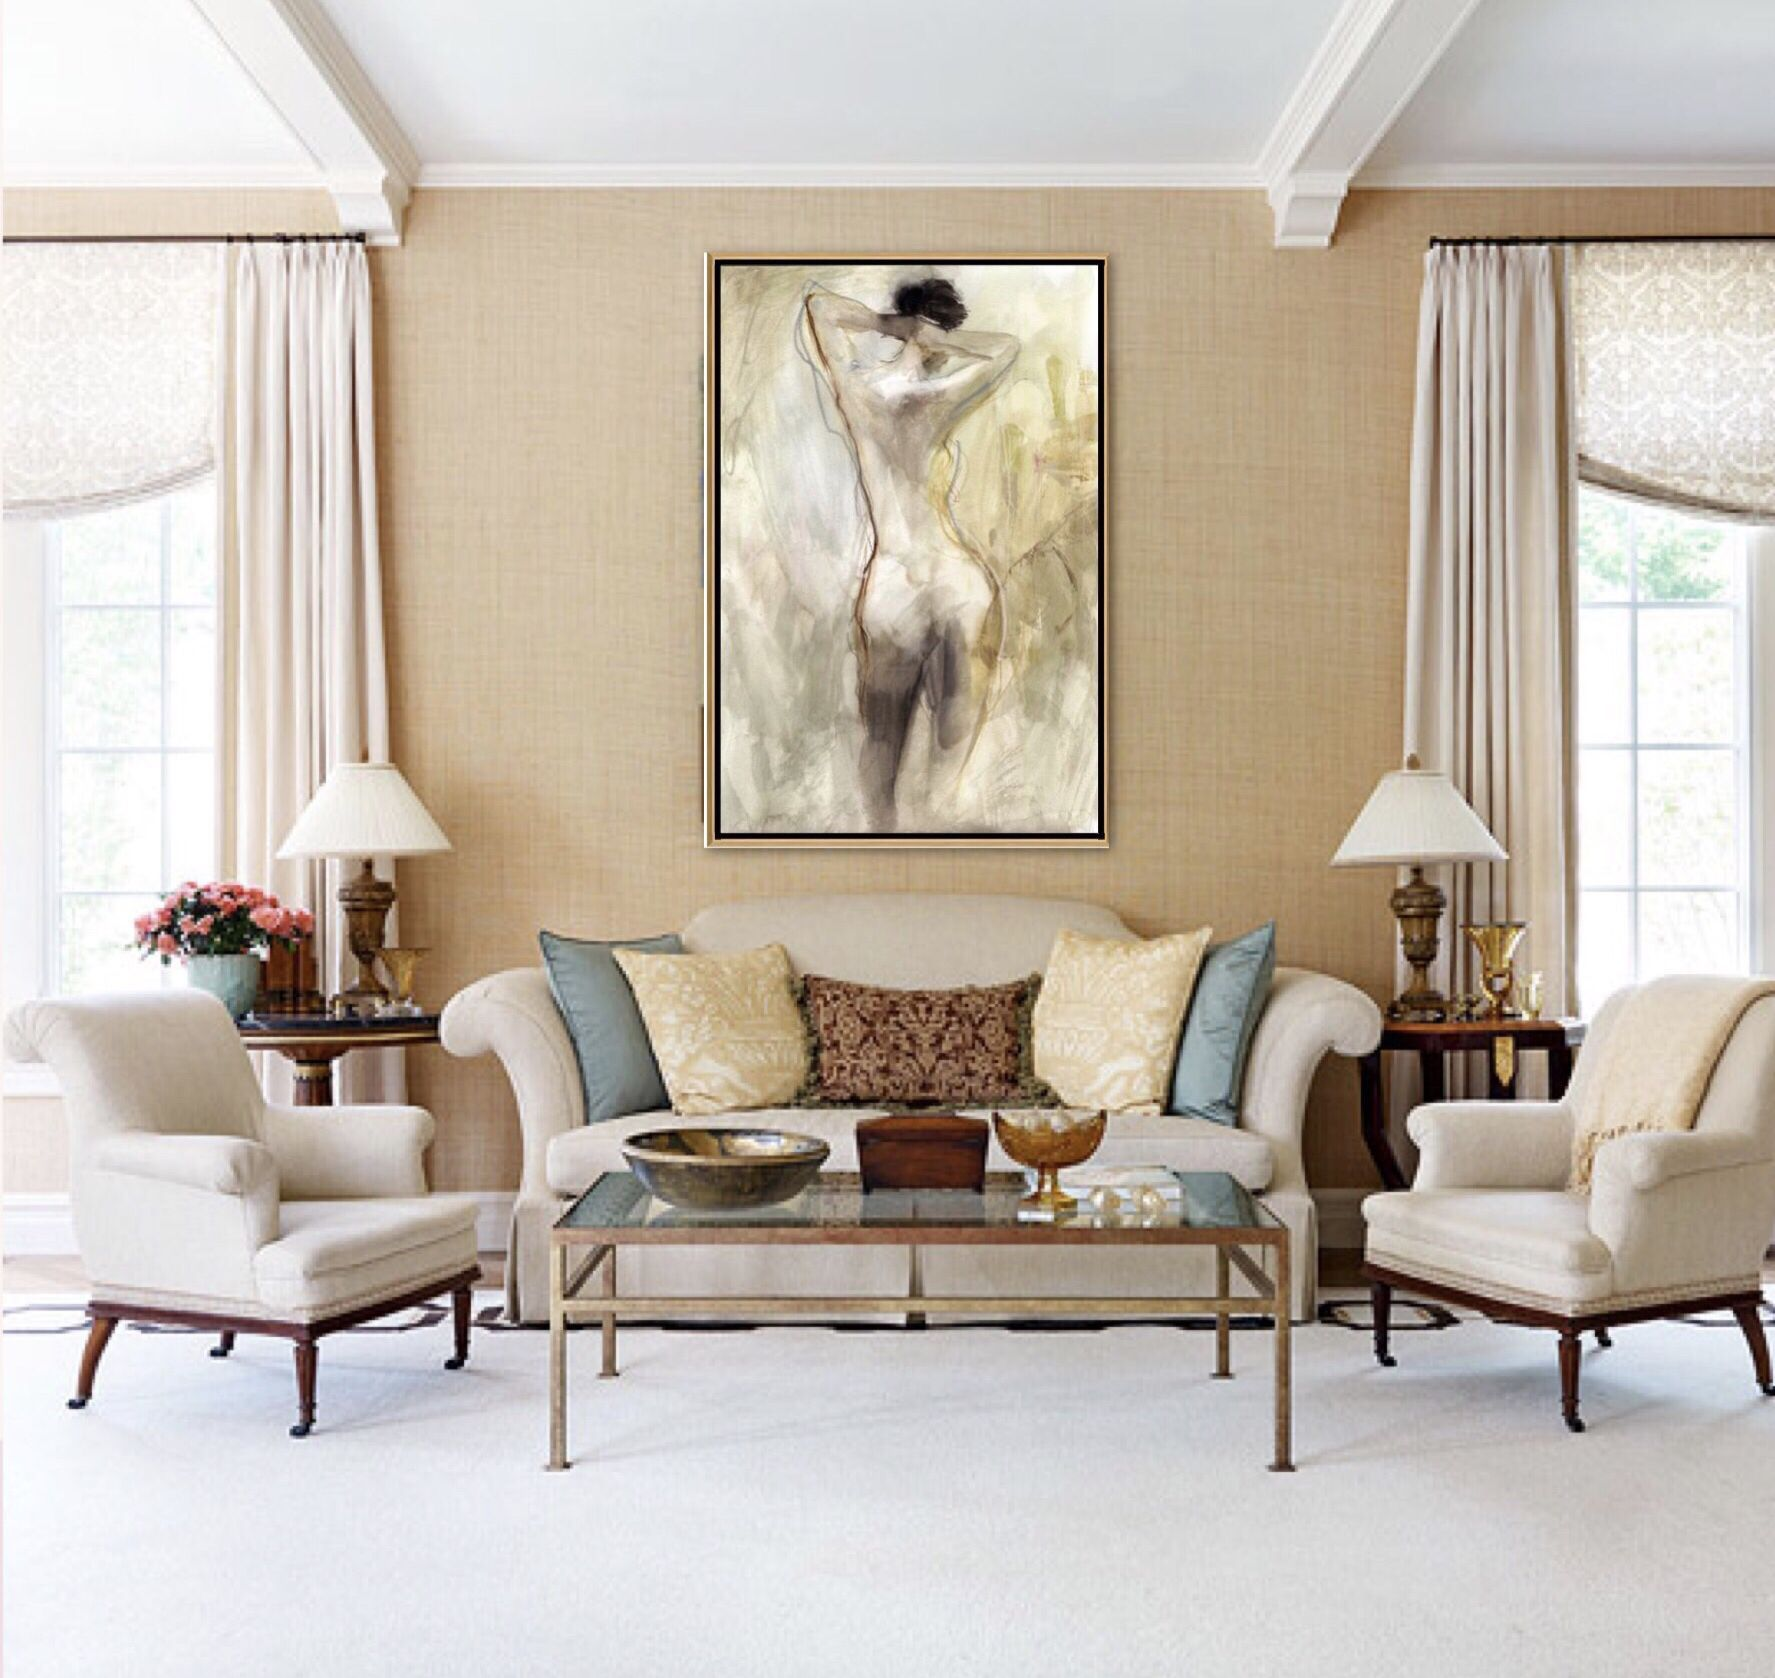 Nude Figure II 40x60 $599.00 #indischeswohnzimmer Figurative Abstracts make every space feel complete!  *  Visit our store Design Haus in Walnut Creek, CA for finish and frame options  * #wallart #art #wallmural #art #ourarthaus #painting #artist #artoninstagram #instaart  #largeart  #largescalepainting #largescalefigurativeabstractart #homedecor #modernliving #interiordesign #roomdecor #homedesign #design #interiordecor #walnutcreek  #pleasanthill  #oakland #berkeley #orinda  #lafayette #alamo #indischeswohnzimmer